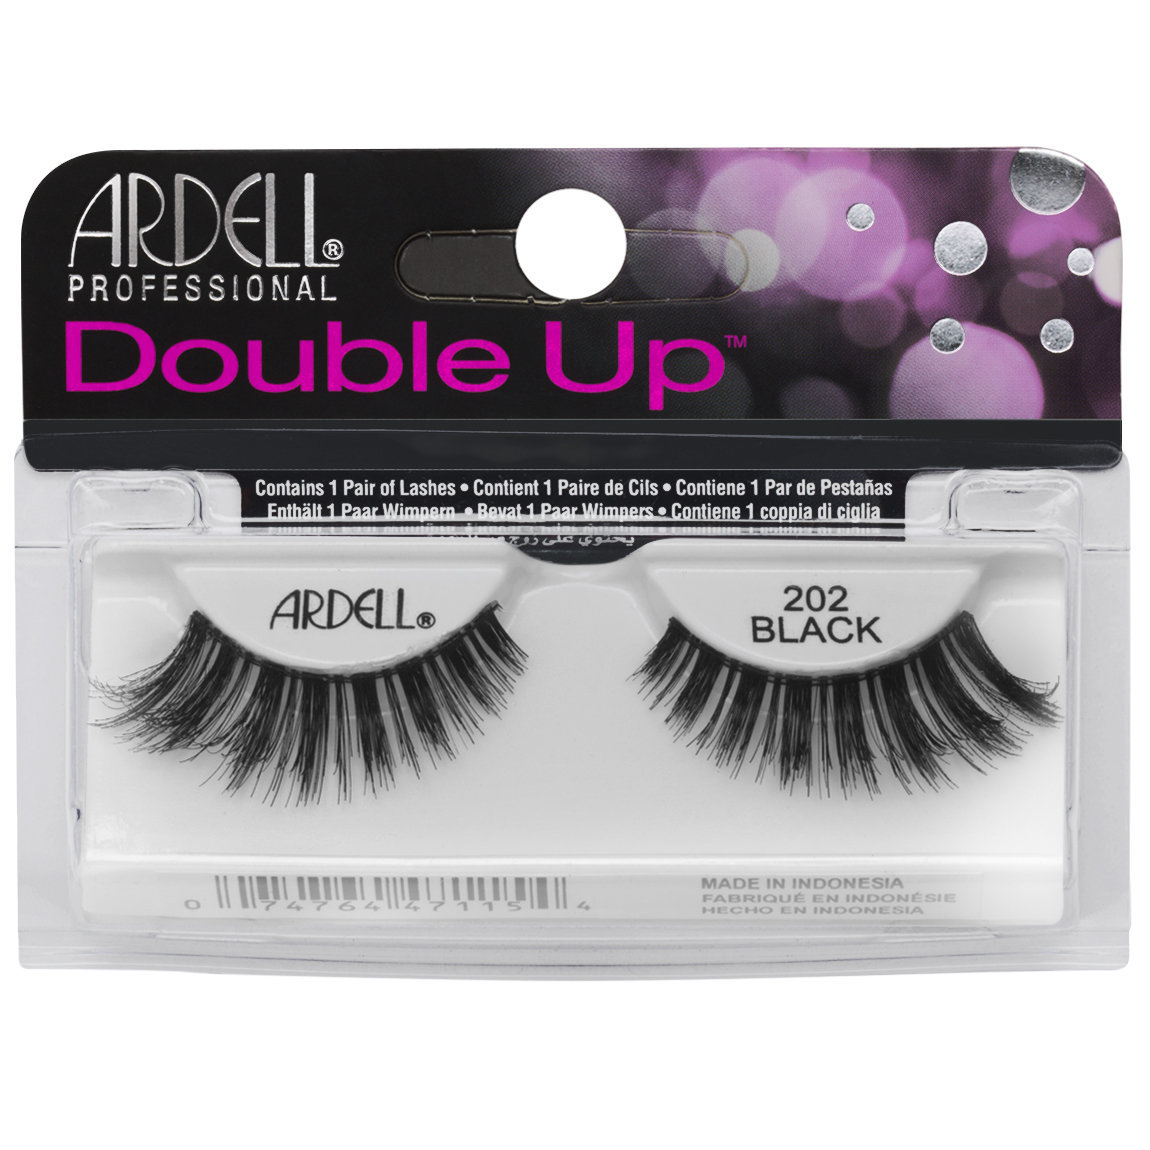 02e7d1f38cb Ardell Double Up Lashes 202 Black | Beautylish